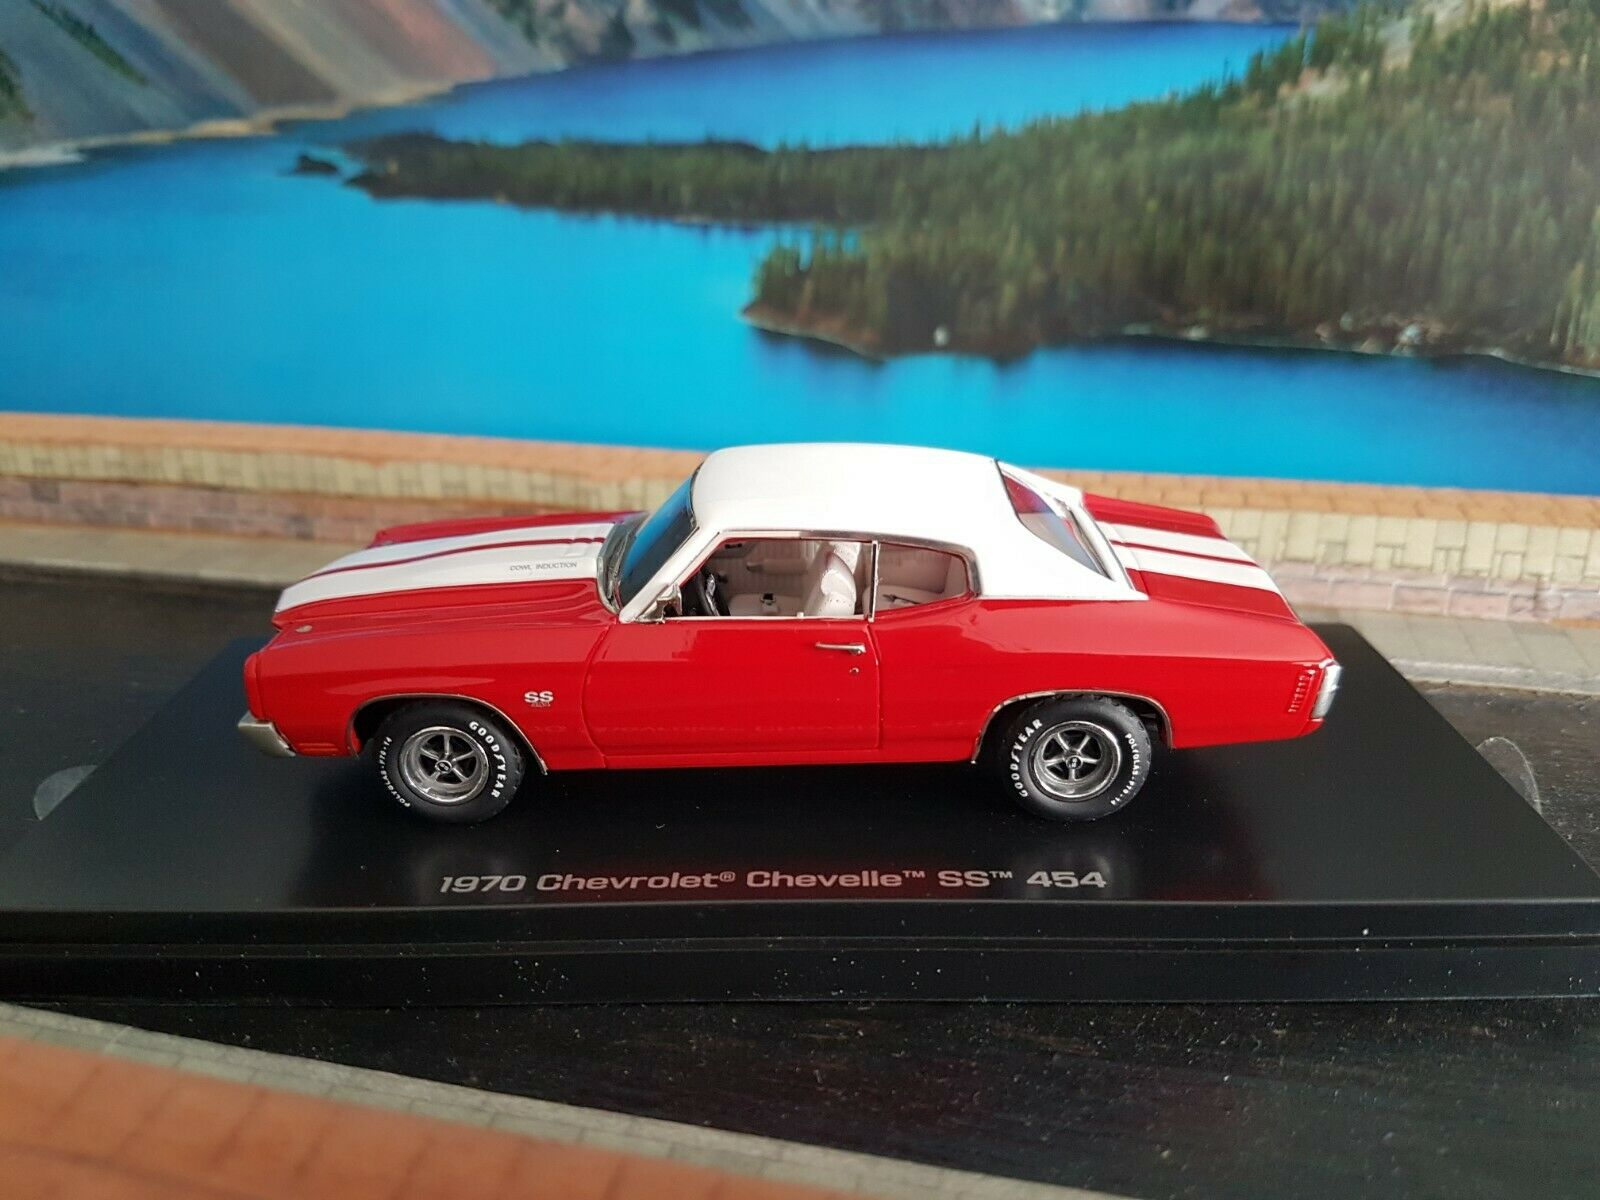 Carworld 1970 chevrolet chevelle ss 454 scale 1.43